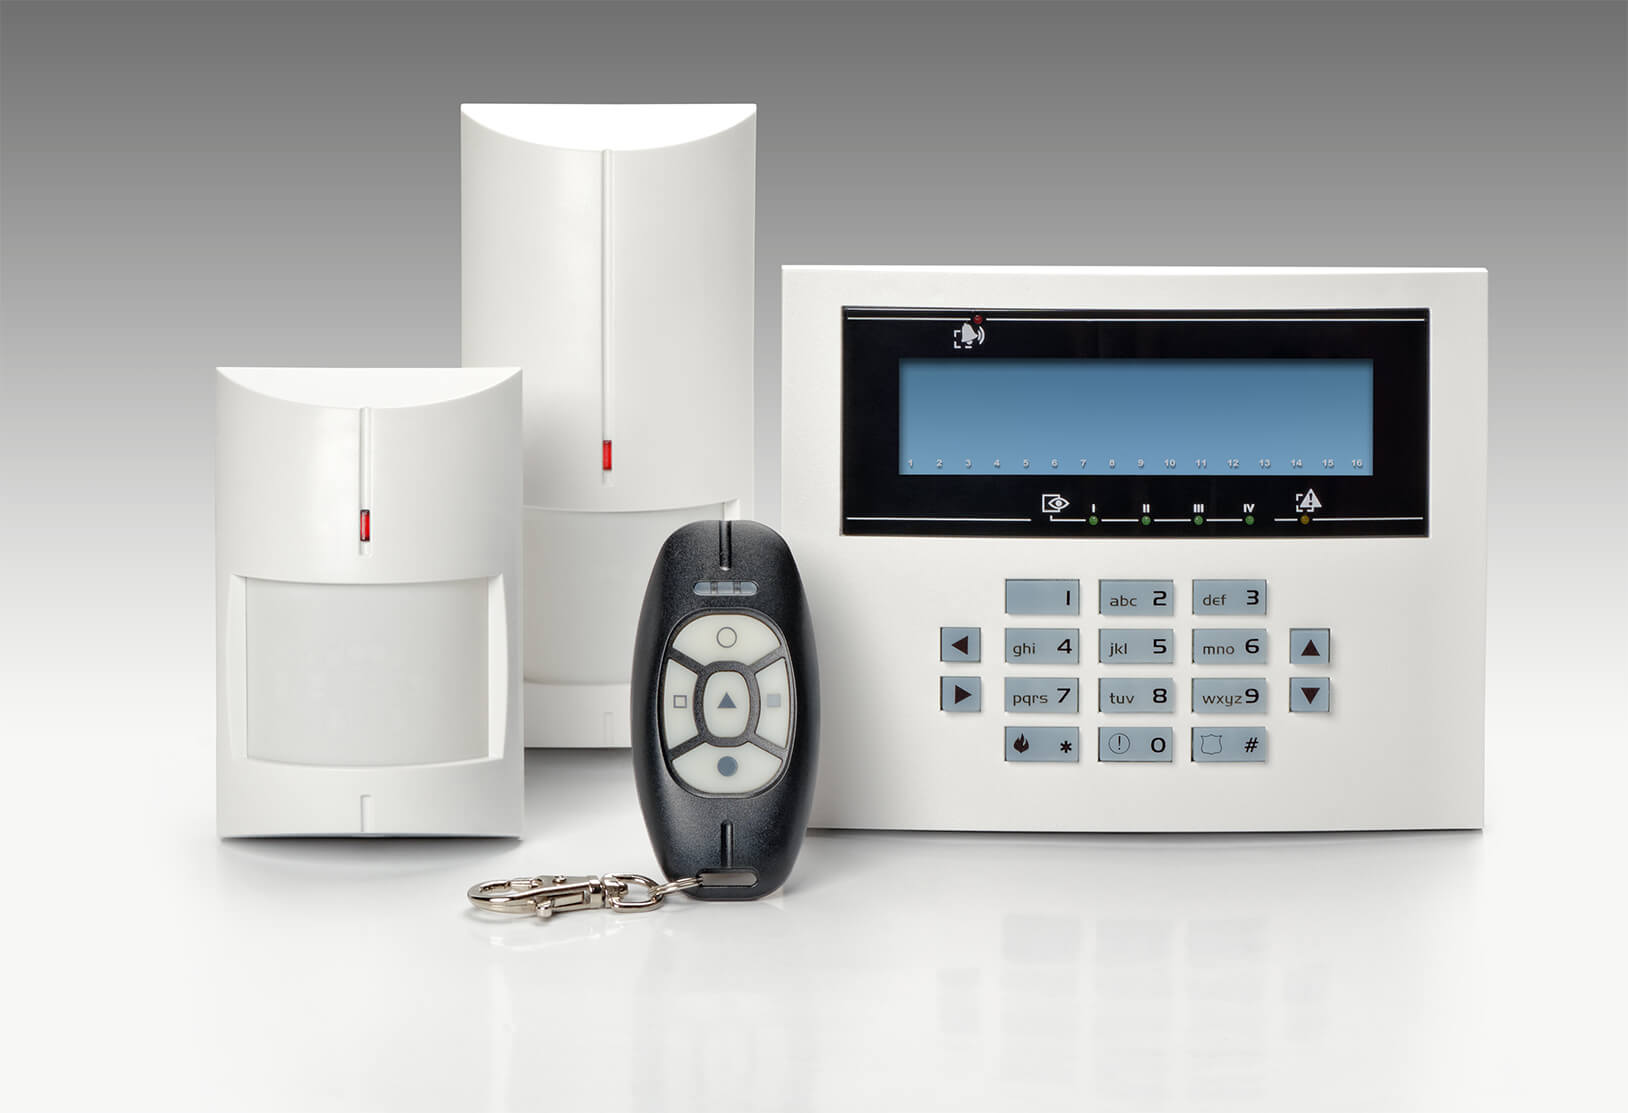 Business & Residential NACOSS Approved Burglar Alarms In Walworth SE17 - Local Walworth SE17 security company.Call 02078872244 - Dedicated to Safety & Security. Companies, shops and homes ..